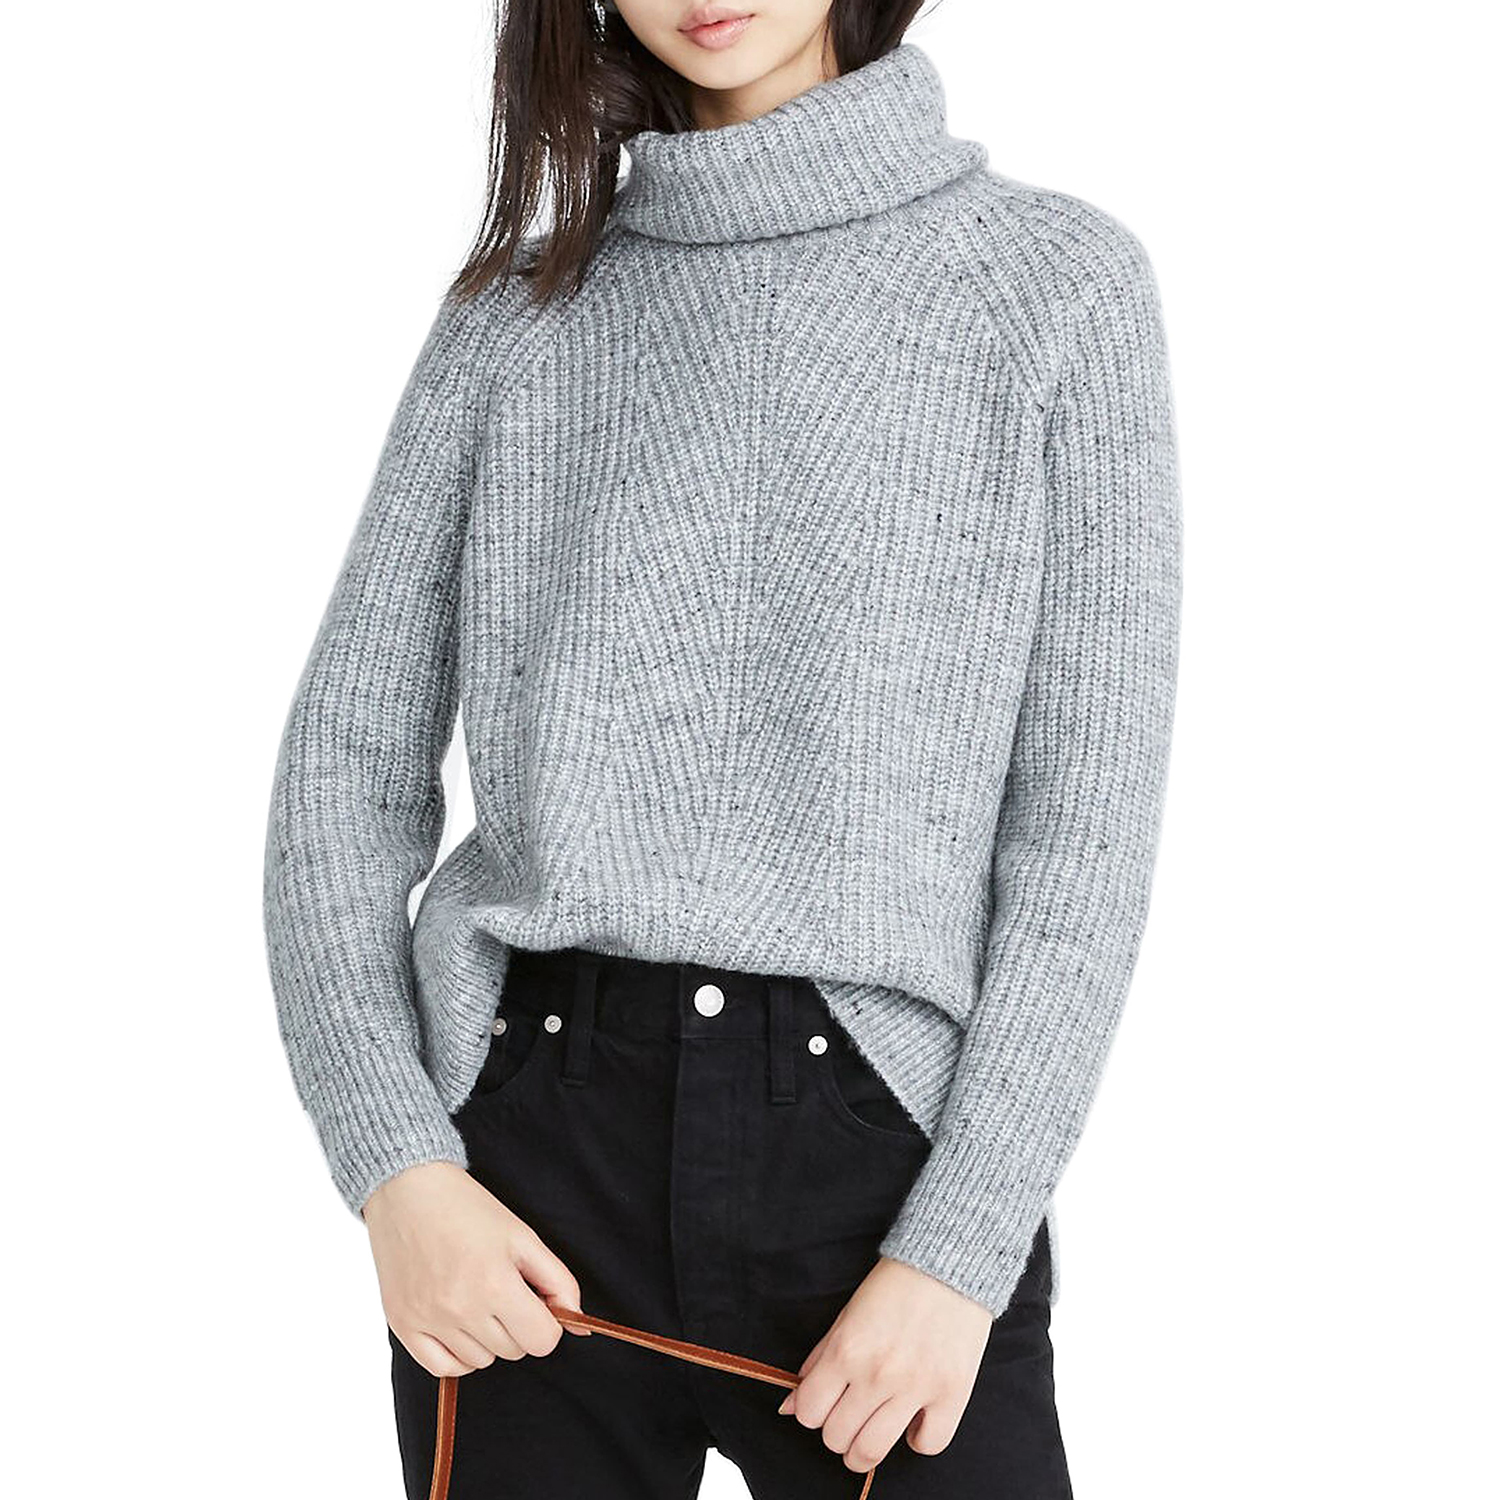 Madewell Donegal Mercer Turtleneck Sweater